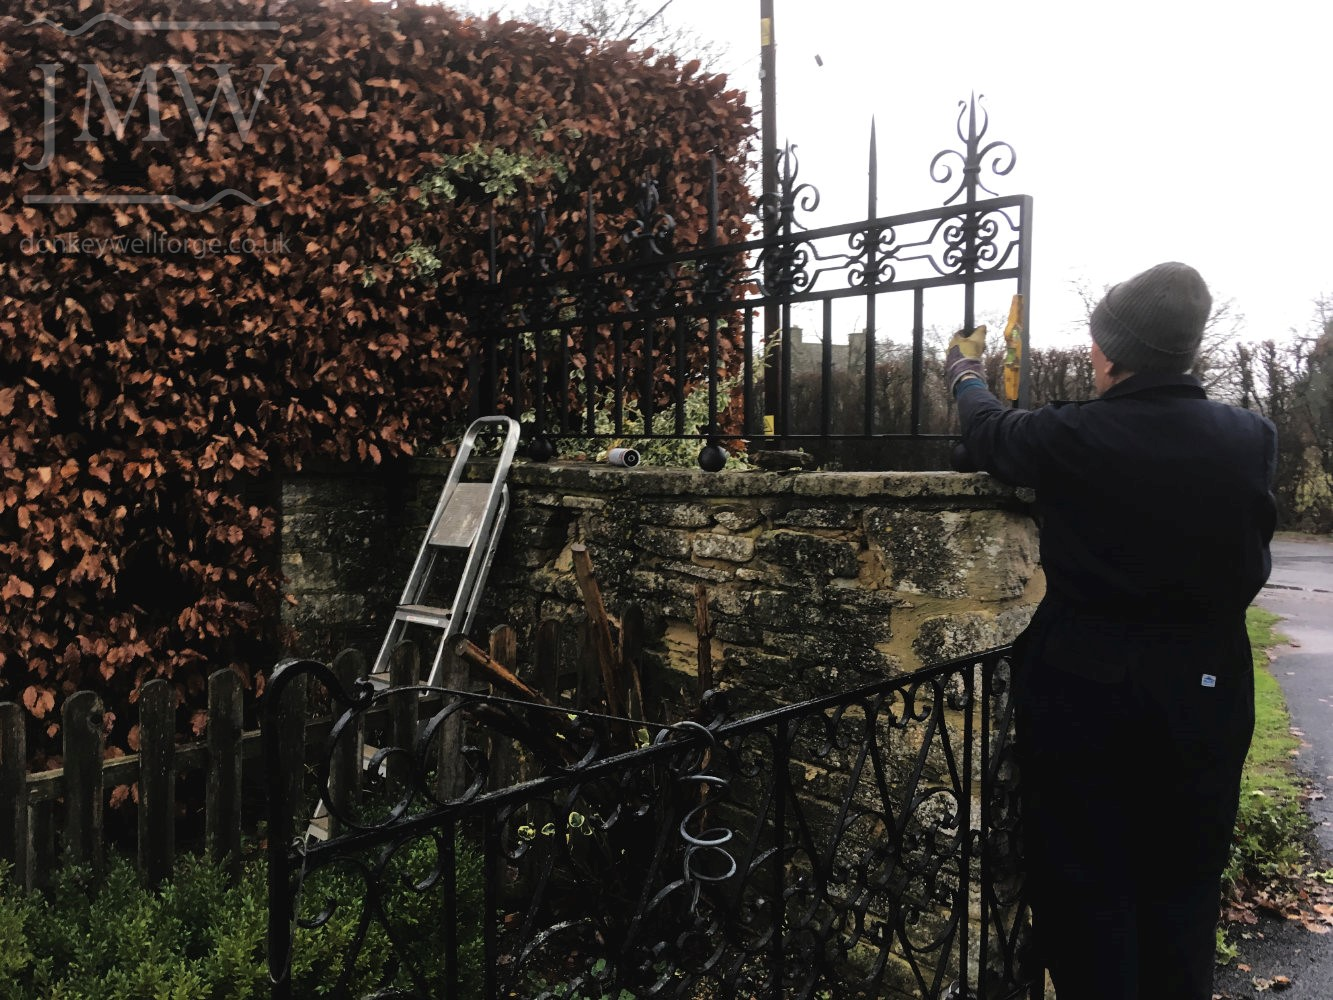 installation-country-estate-ironwork-ornate-cotswold-railings